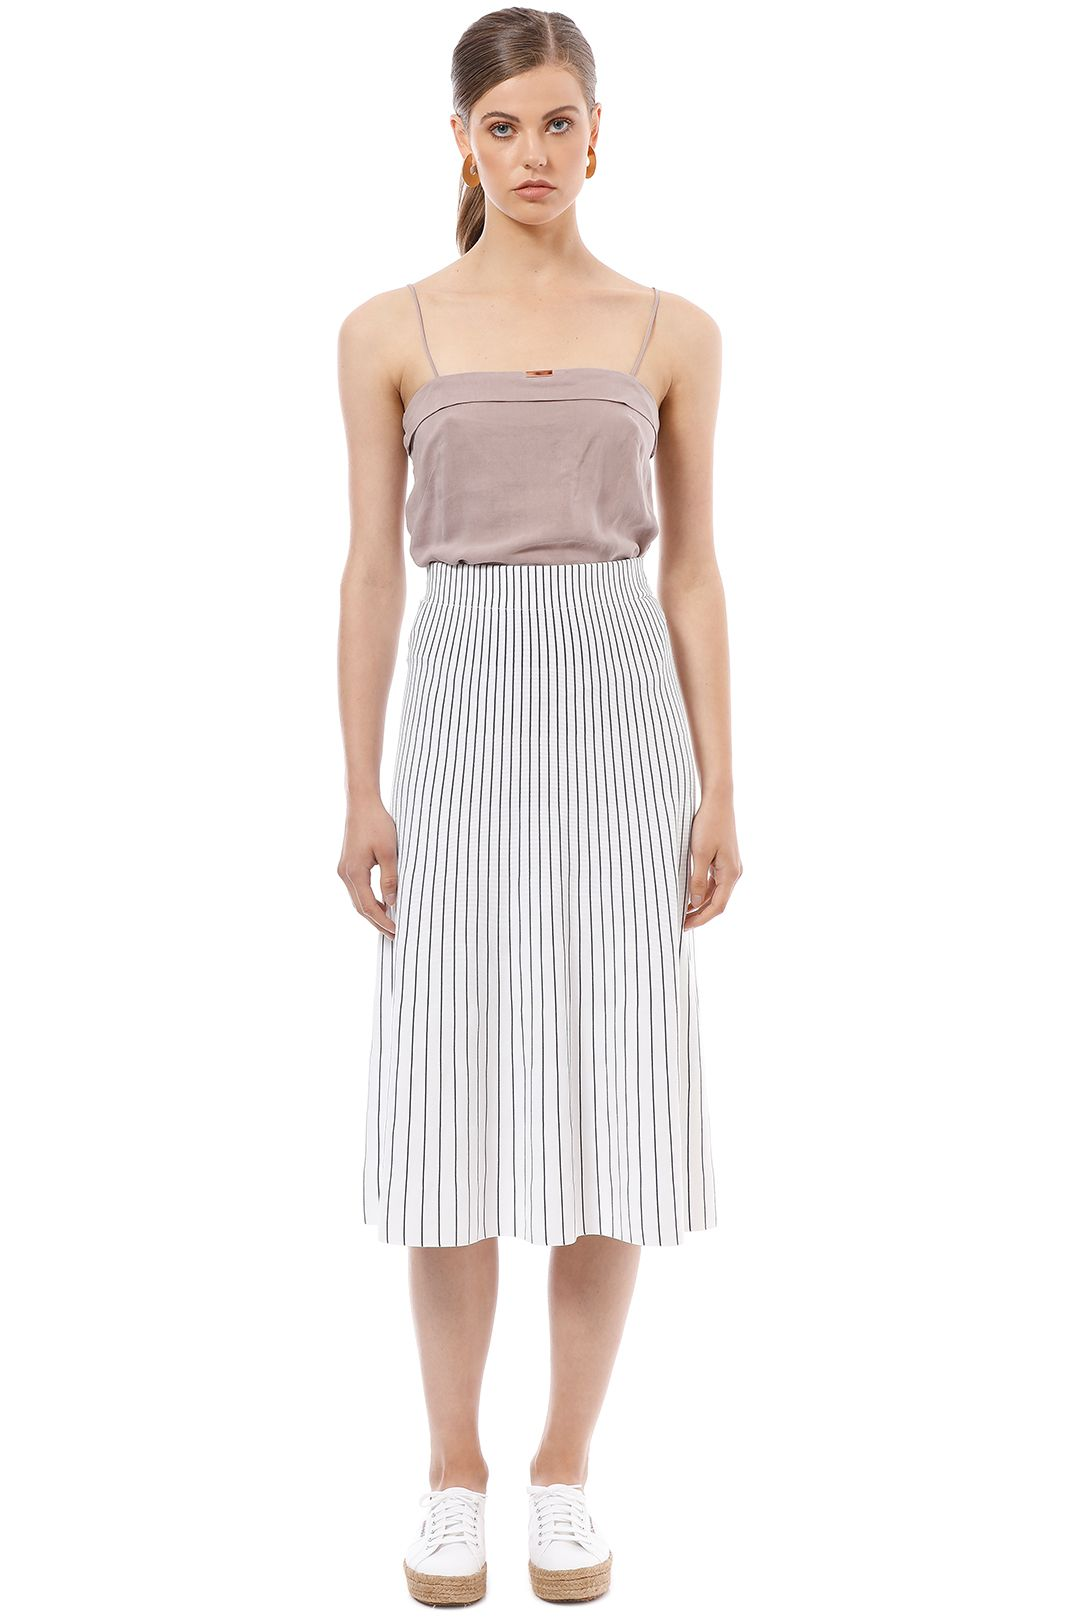 Elka Collective - Ruby Skirt - White Stripe - Front